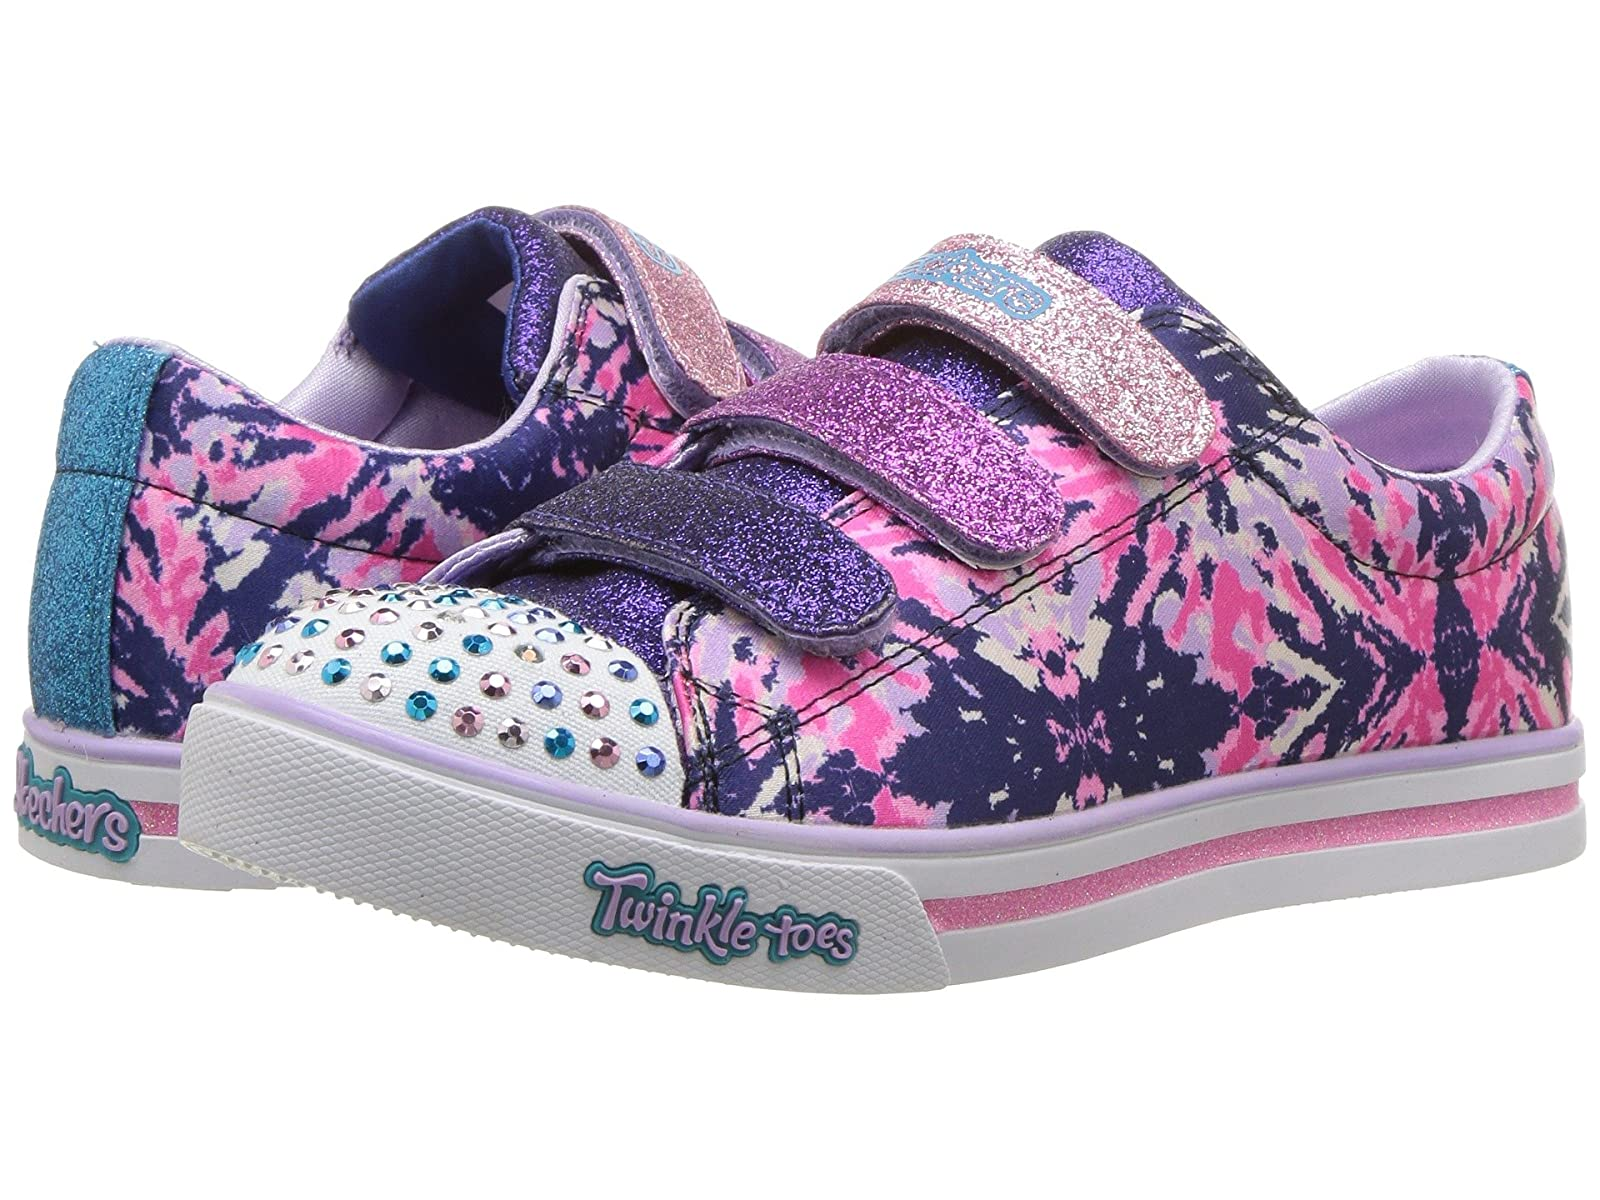 SKECHERS KIDS Twinkle Toes - Sparkle Glitz 10839L Lights (Little Kid/Big Kid)Atmospheric grades have affordable shoes